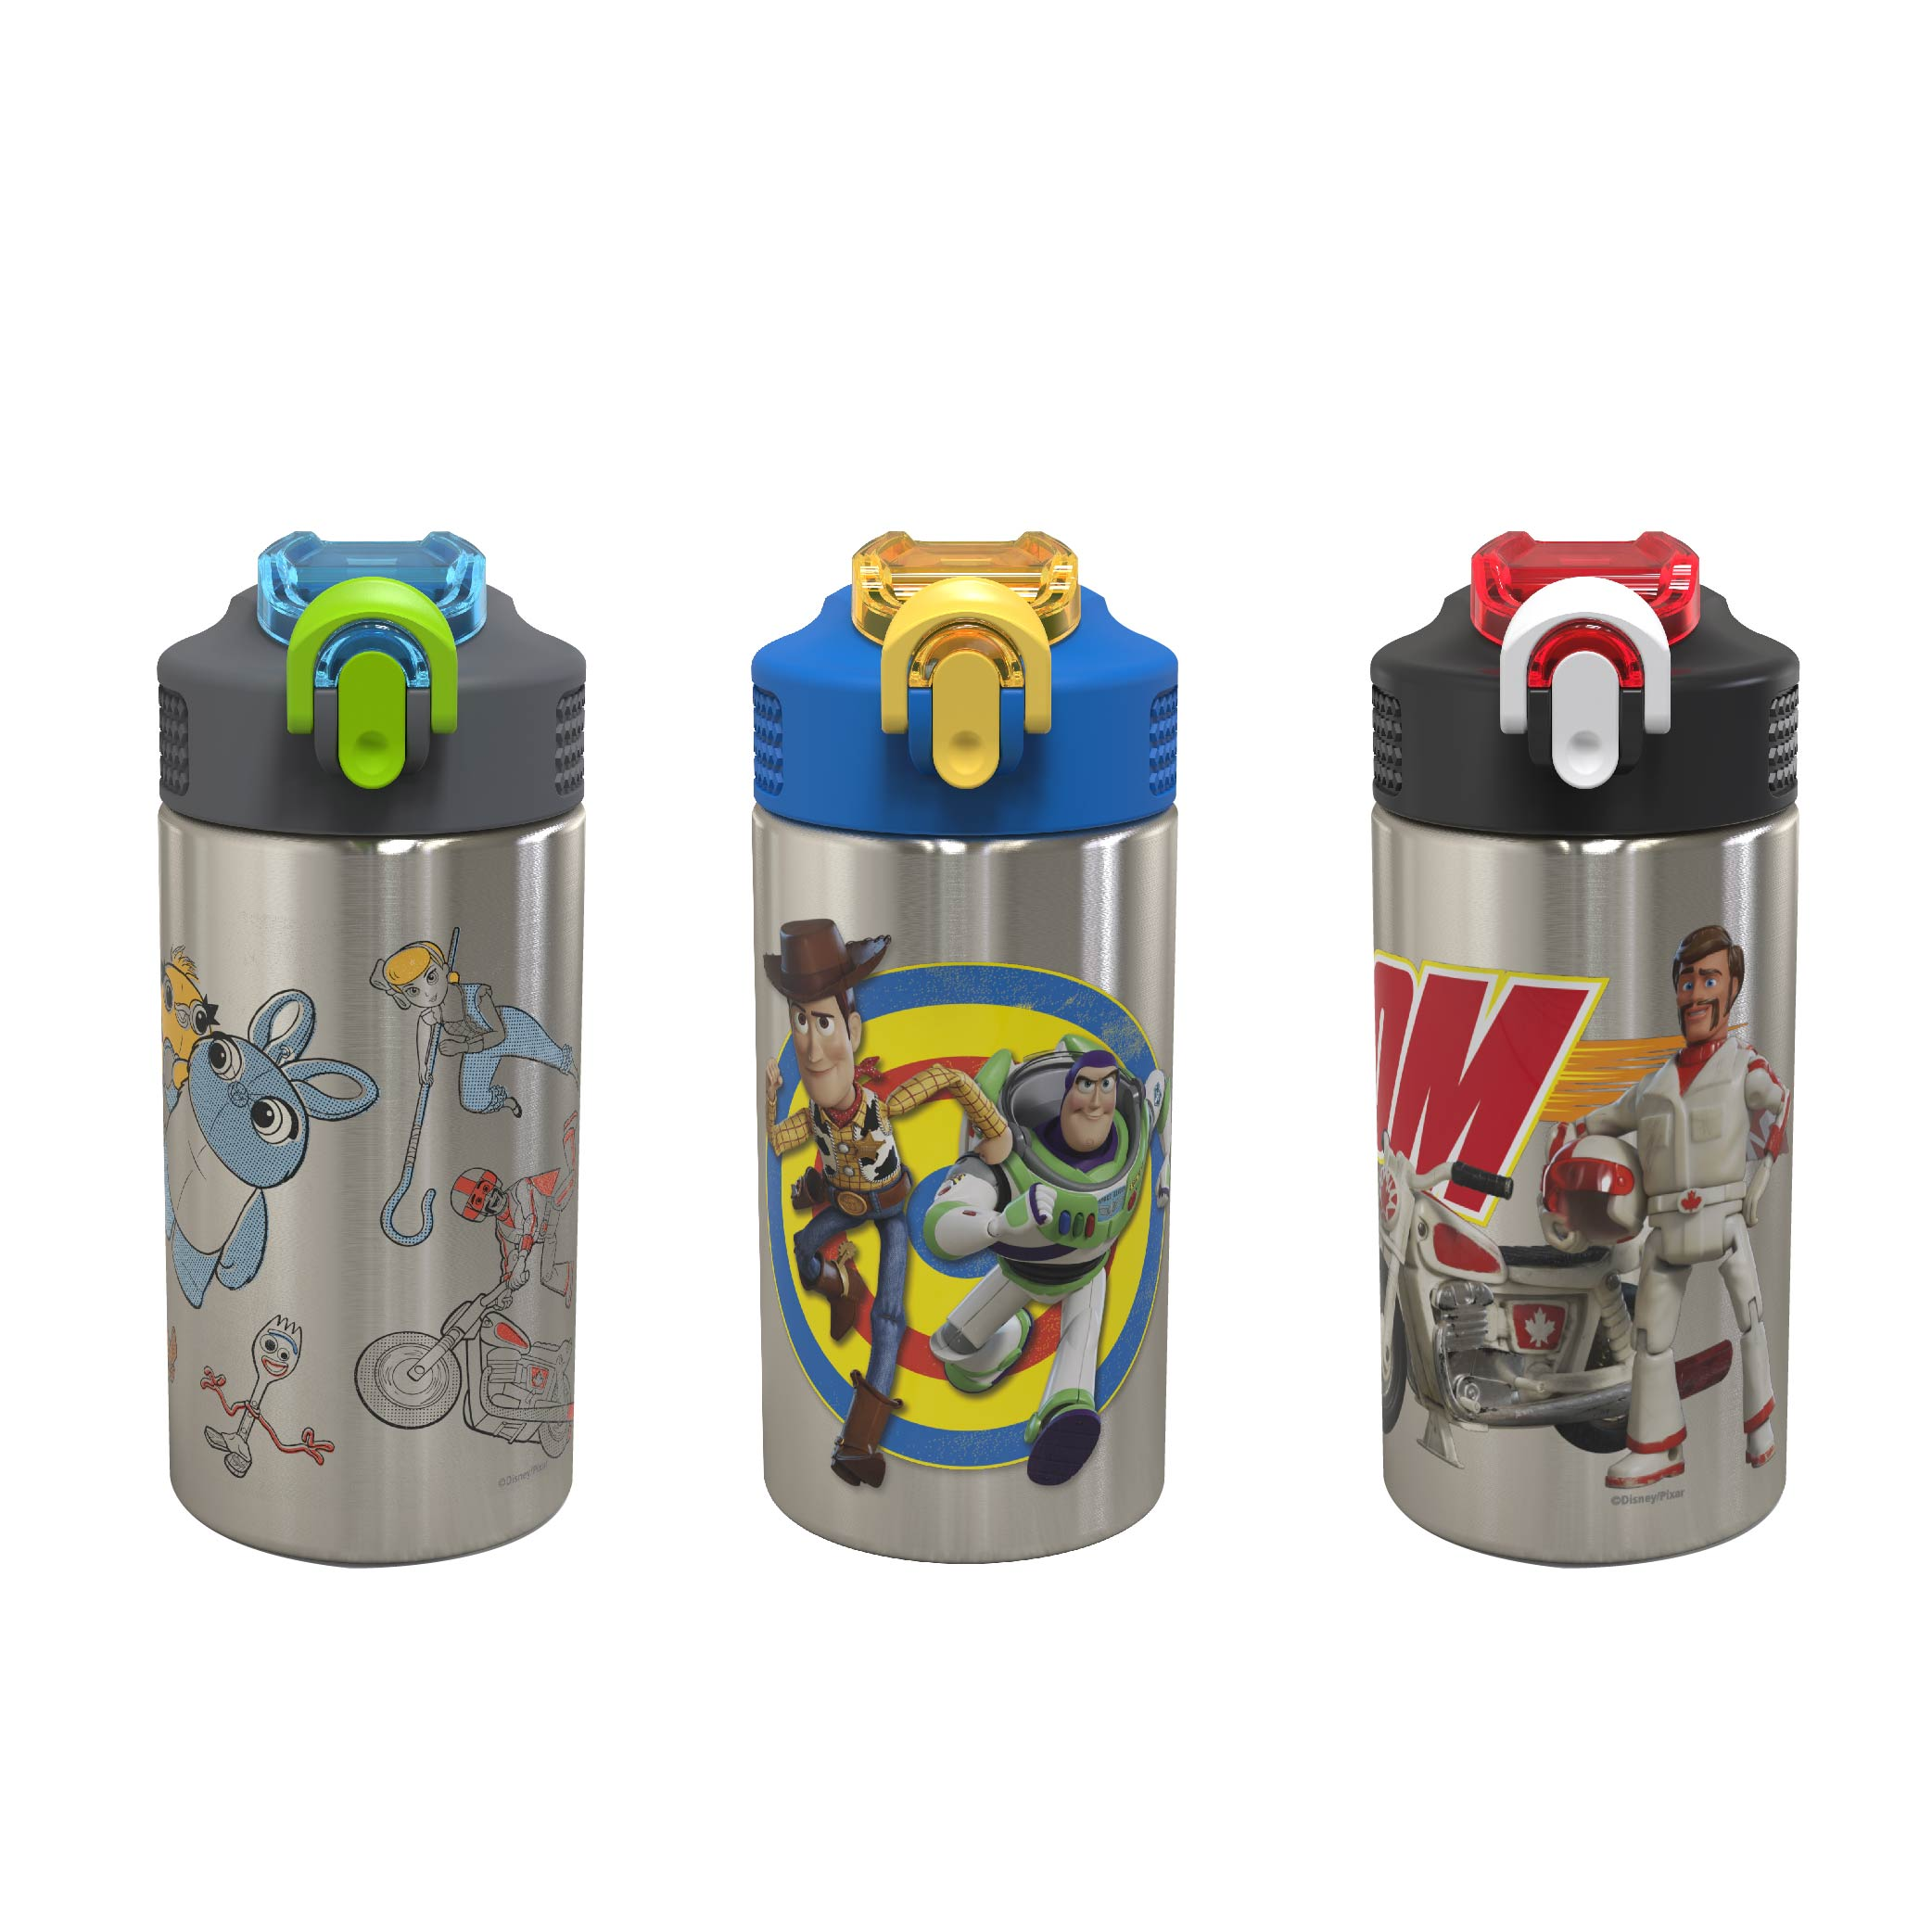 Toy Story 5 15.5 ounce Water Bottle, Duke Caboom slideshow image 3